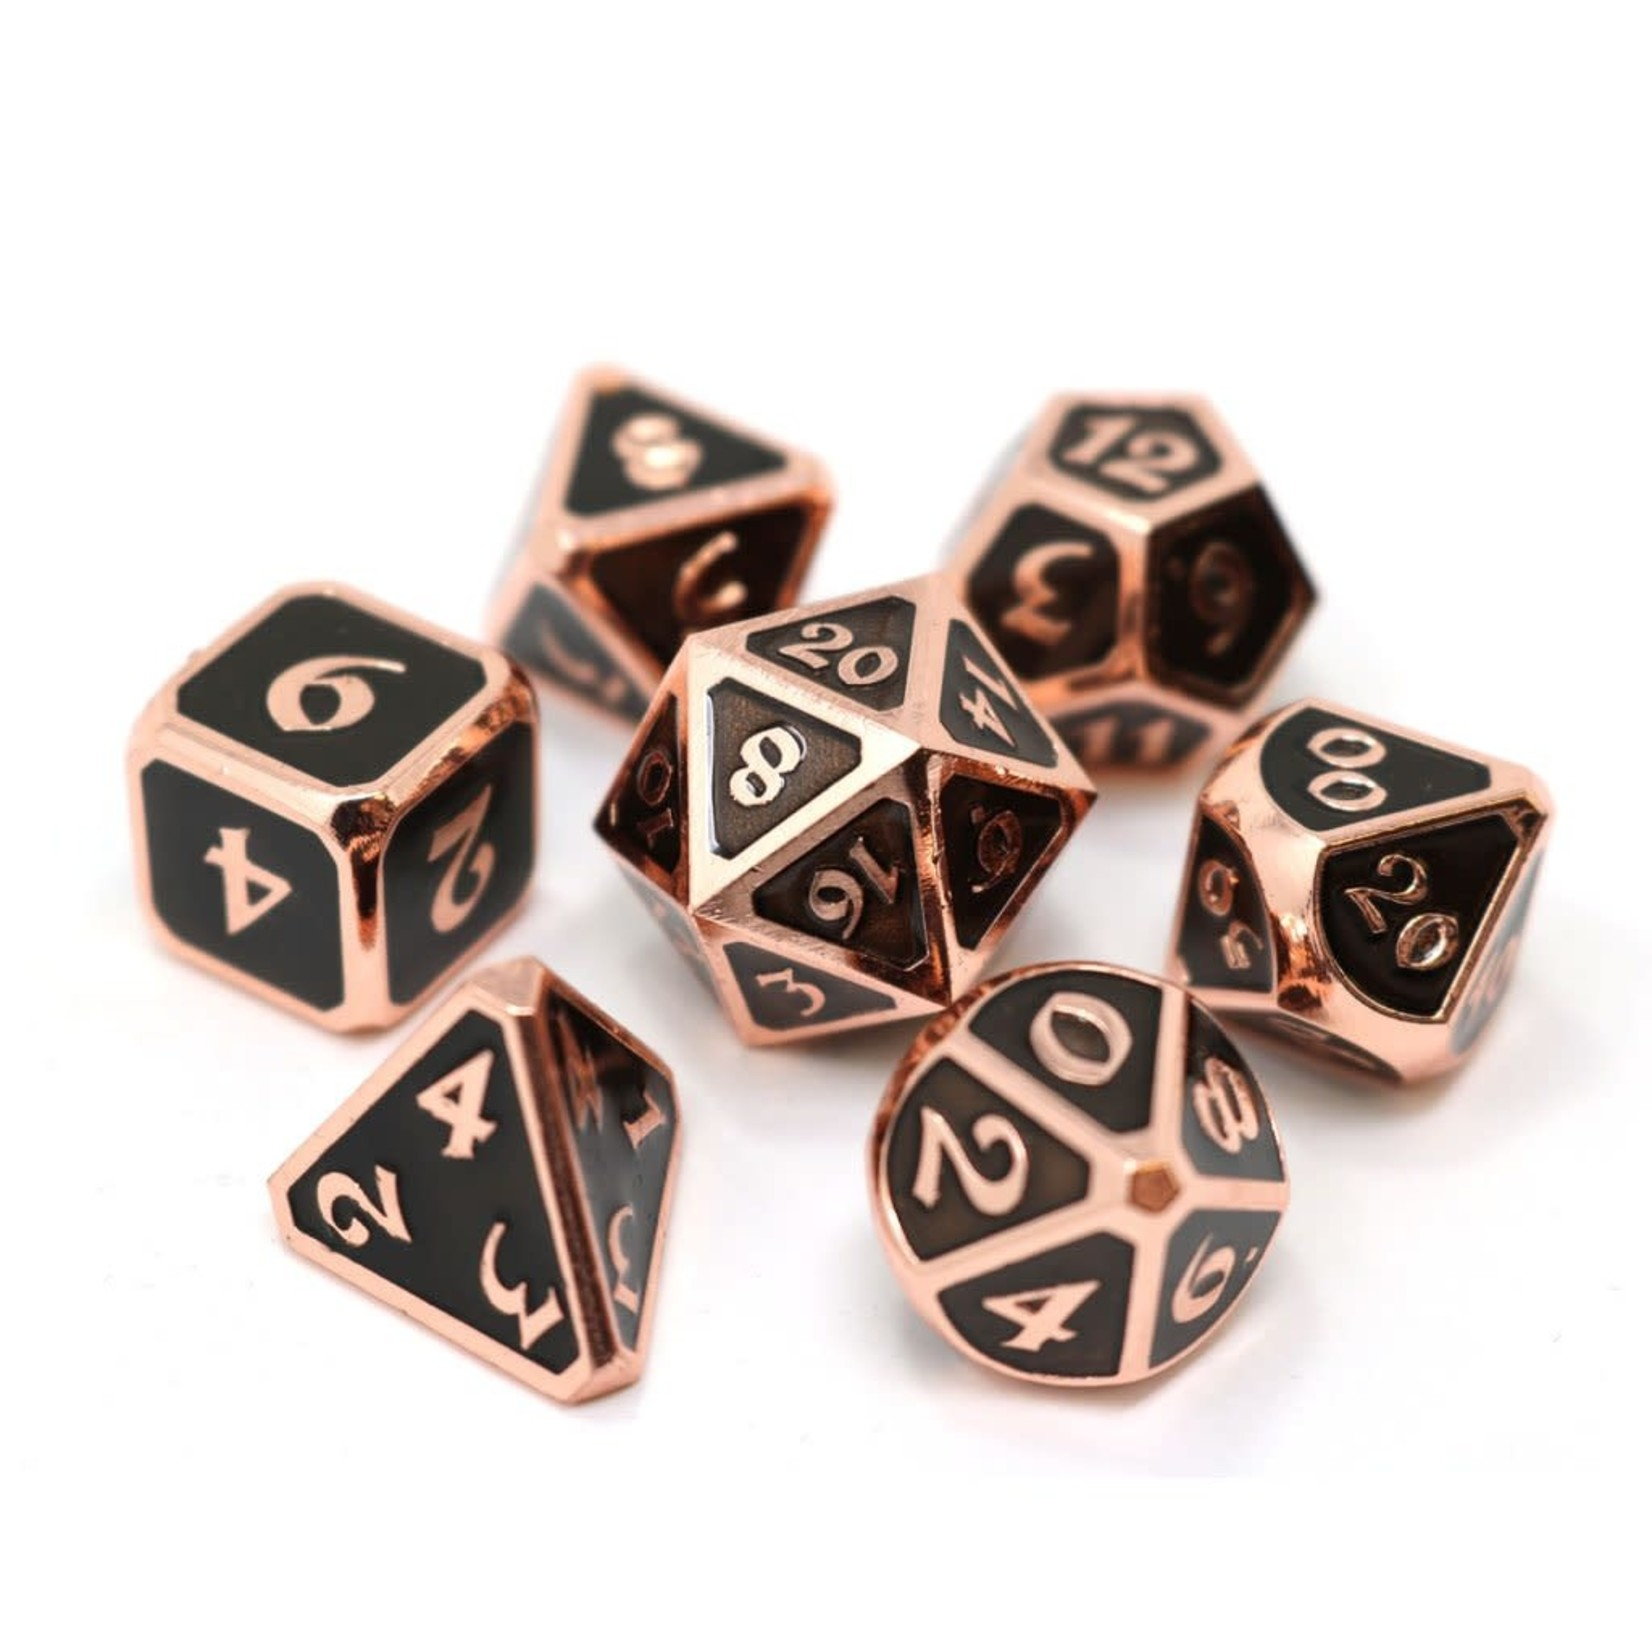 Die Hard Dice 7-Set Dice: Mythica Copper Onyx